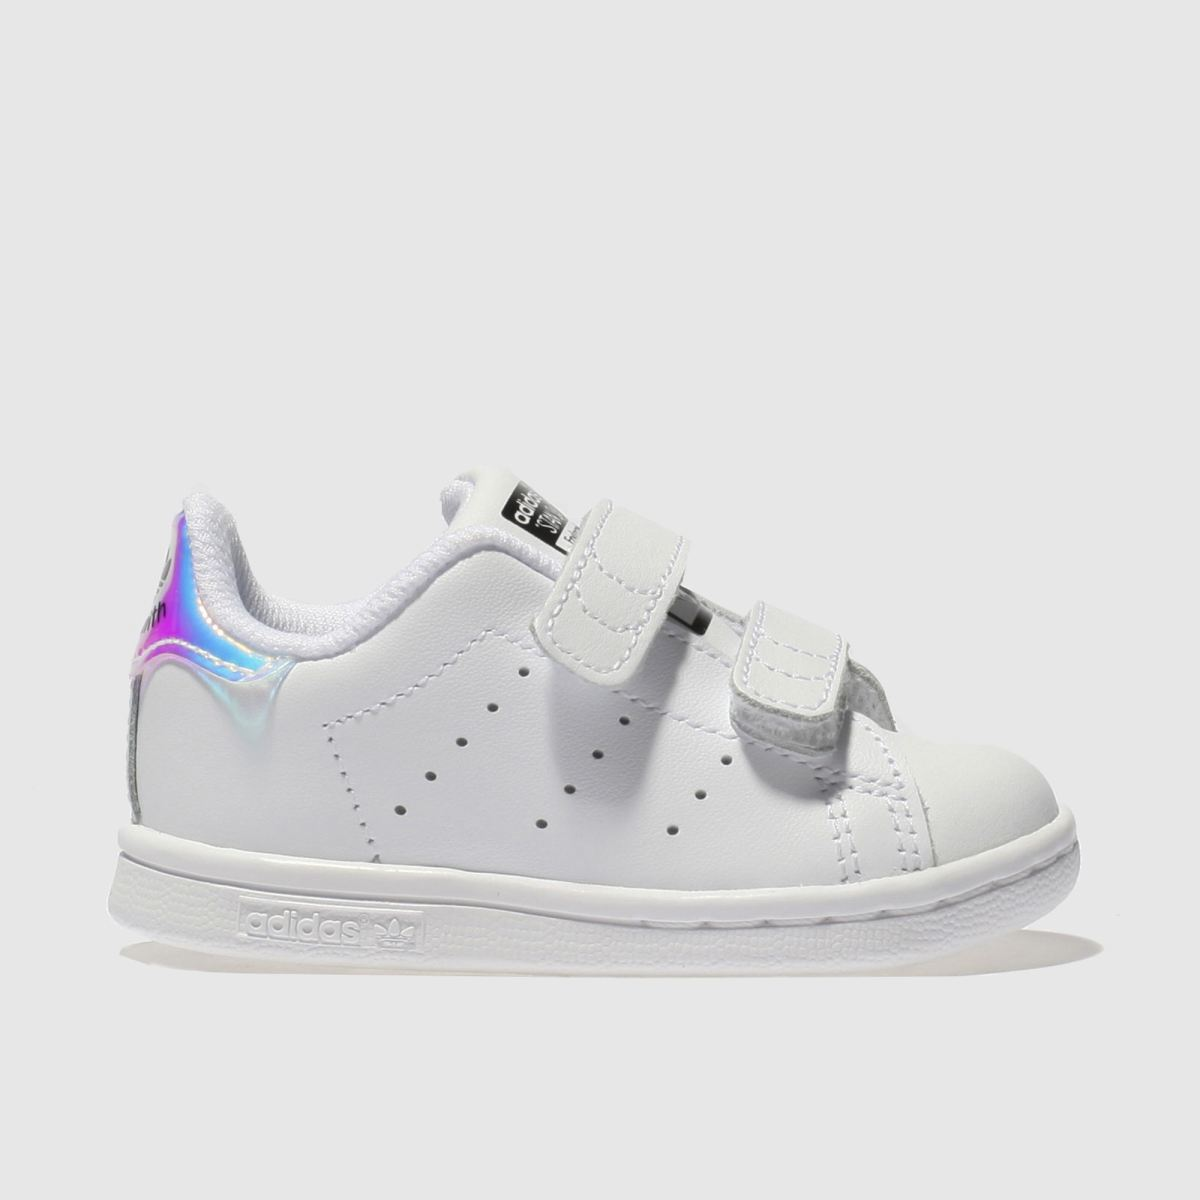 7633aeb0b4b Stan Smith Adidas los. Adidas Stan Smith Velcro Women los granados ...